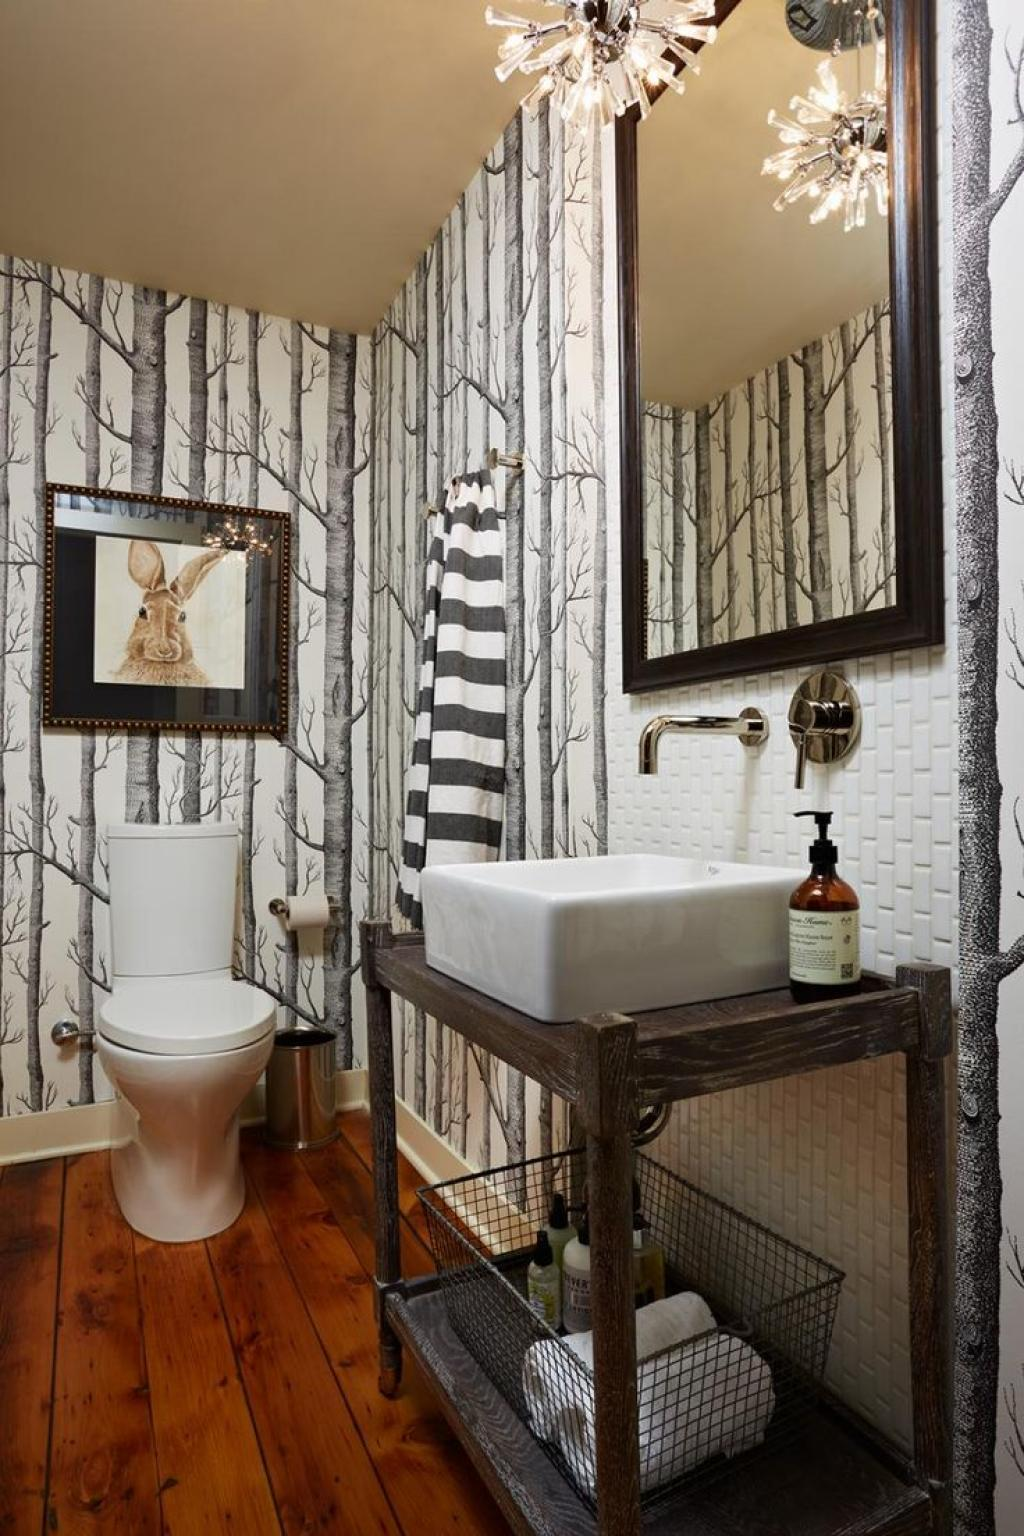 Dry Wood Forest Bathroom Wallpaper Ideas For Small Modern. Rooms For Rent In Suwanee Ga. Real Looking Halloween Decorations. Decorative Maps For Walls. Decorative Trusses. Chandelier For Baby Girl Room. Rooms For Rent Baltimore. Room Decor For Tweens. Curtains For Baby Room